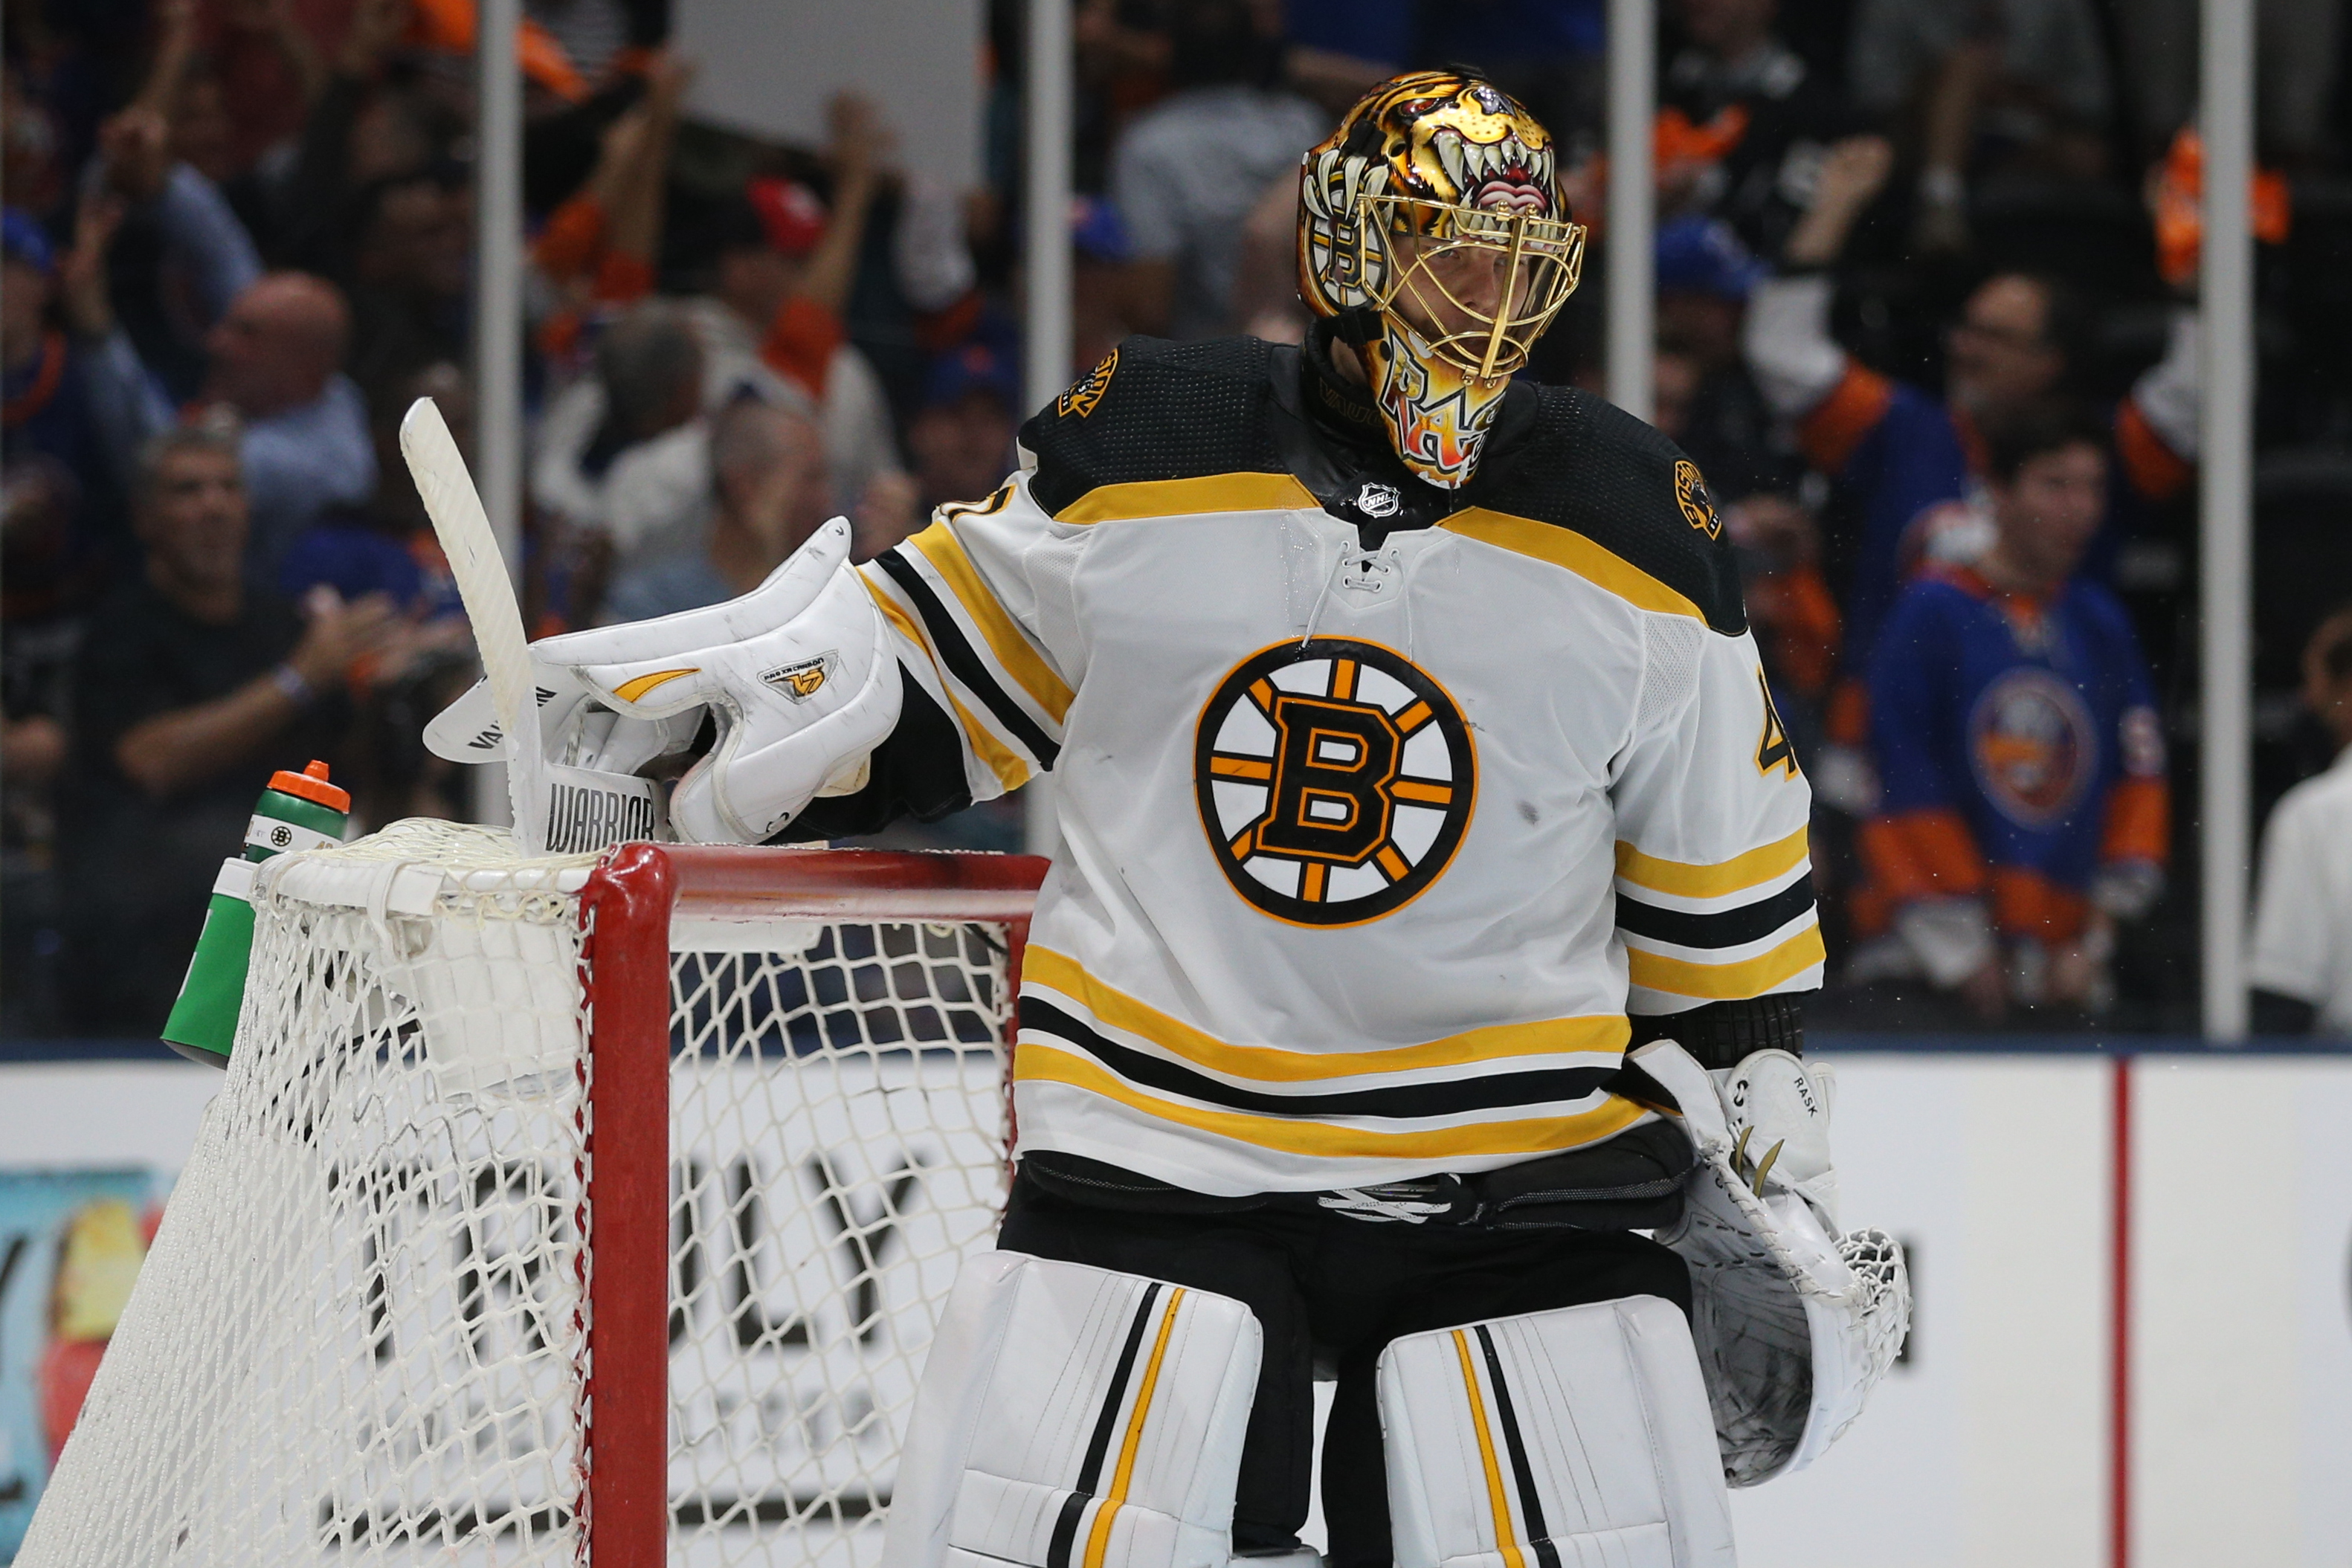 Boston Bruins goalie Tuukka Rask (40) reacts after a goal by New York Islanders right wing Kyle Palmieri (not pictured) during the second period of game six of the second round of the 2021 Stanley Cup Playoffs at Nassau Veterans Memorial Coliseum.